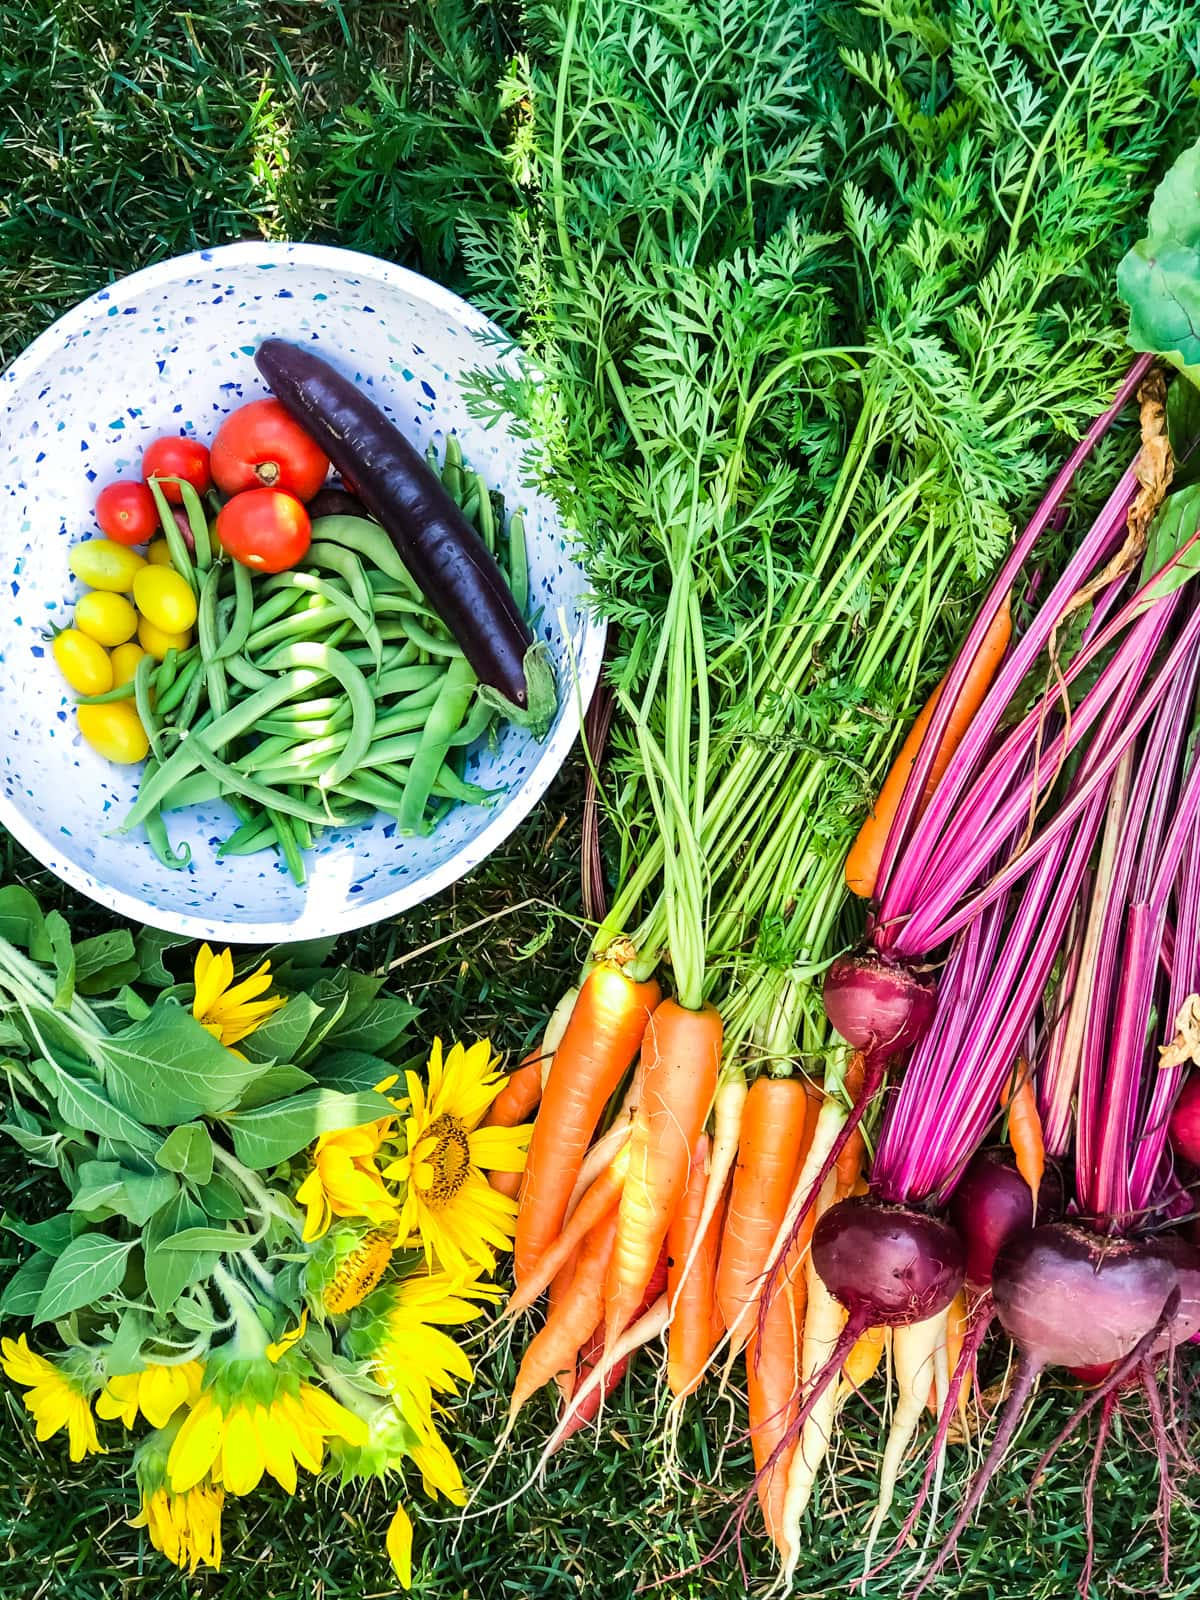 a top down view of freshly picked green beans, carrots, beets, sunflowers and tomatoes